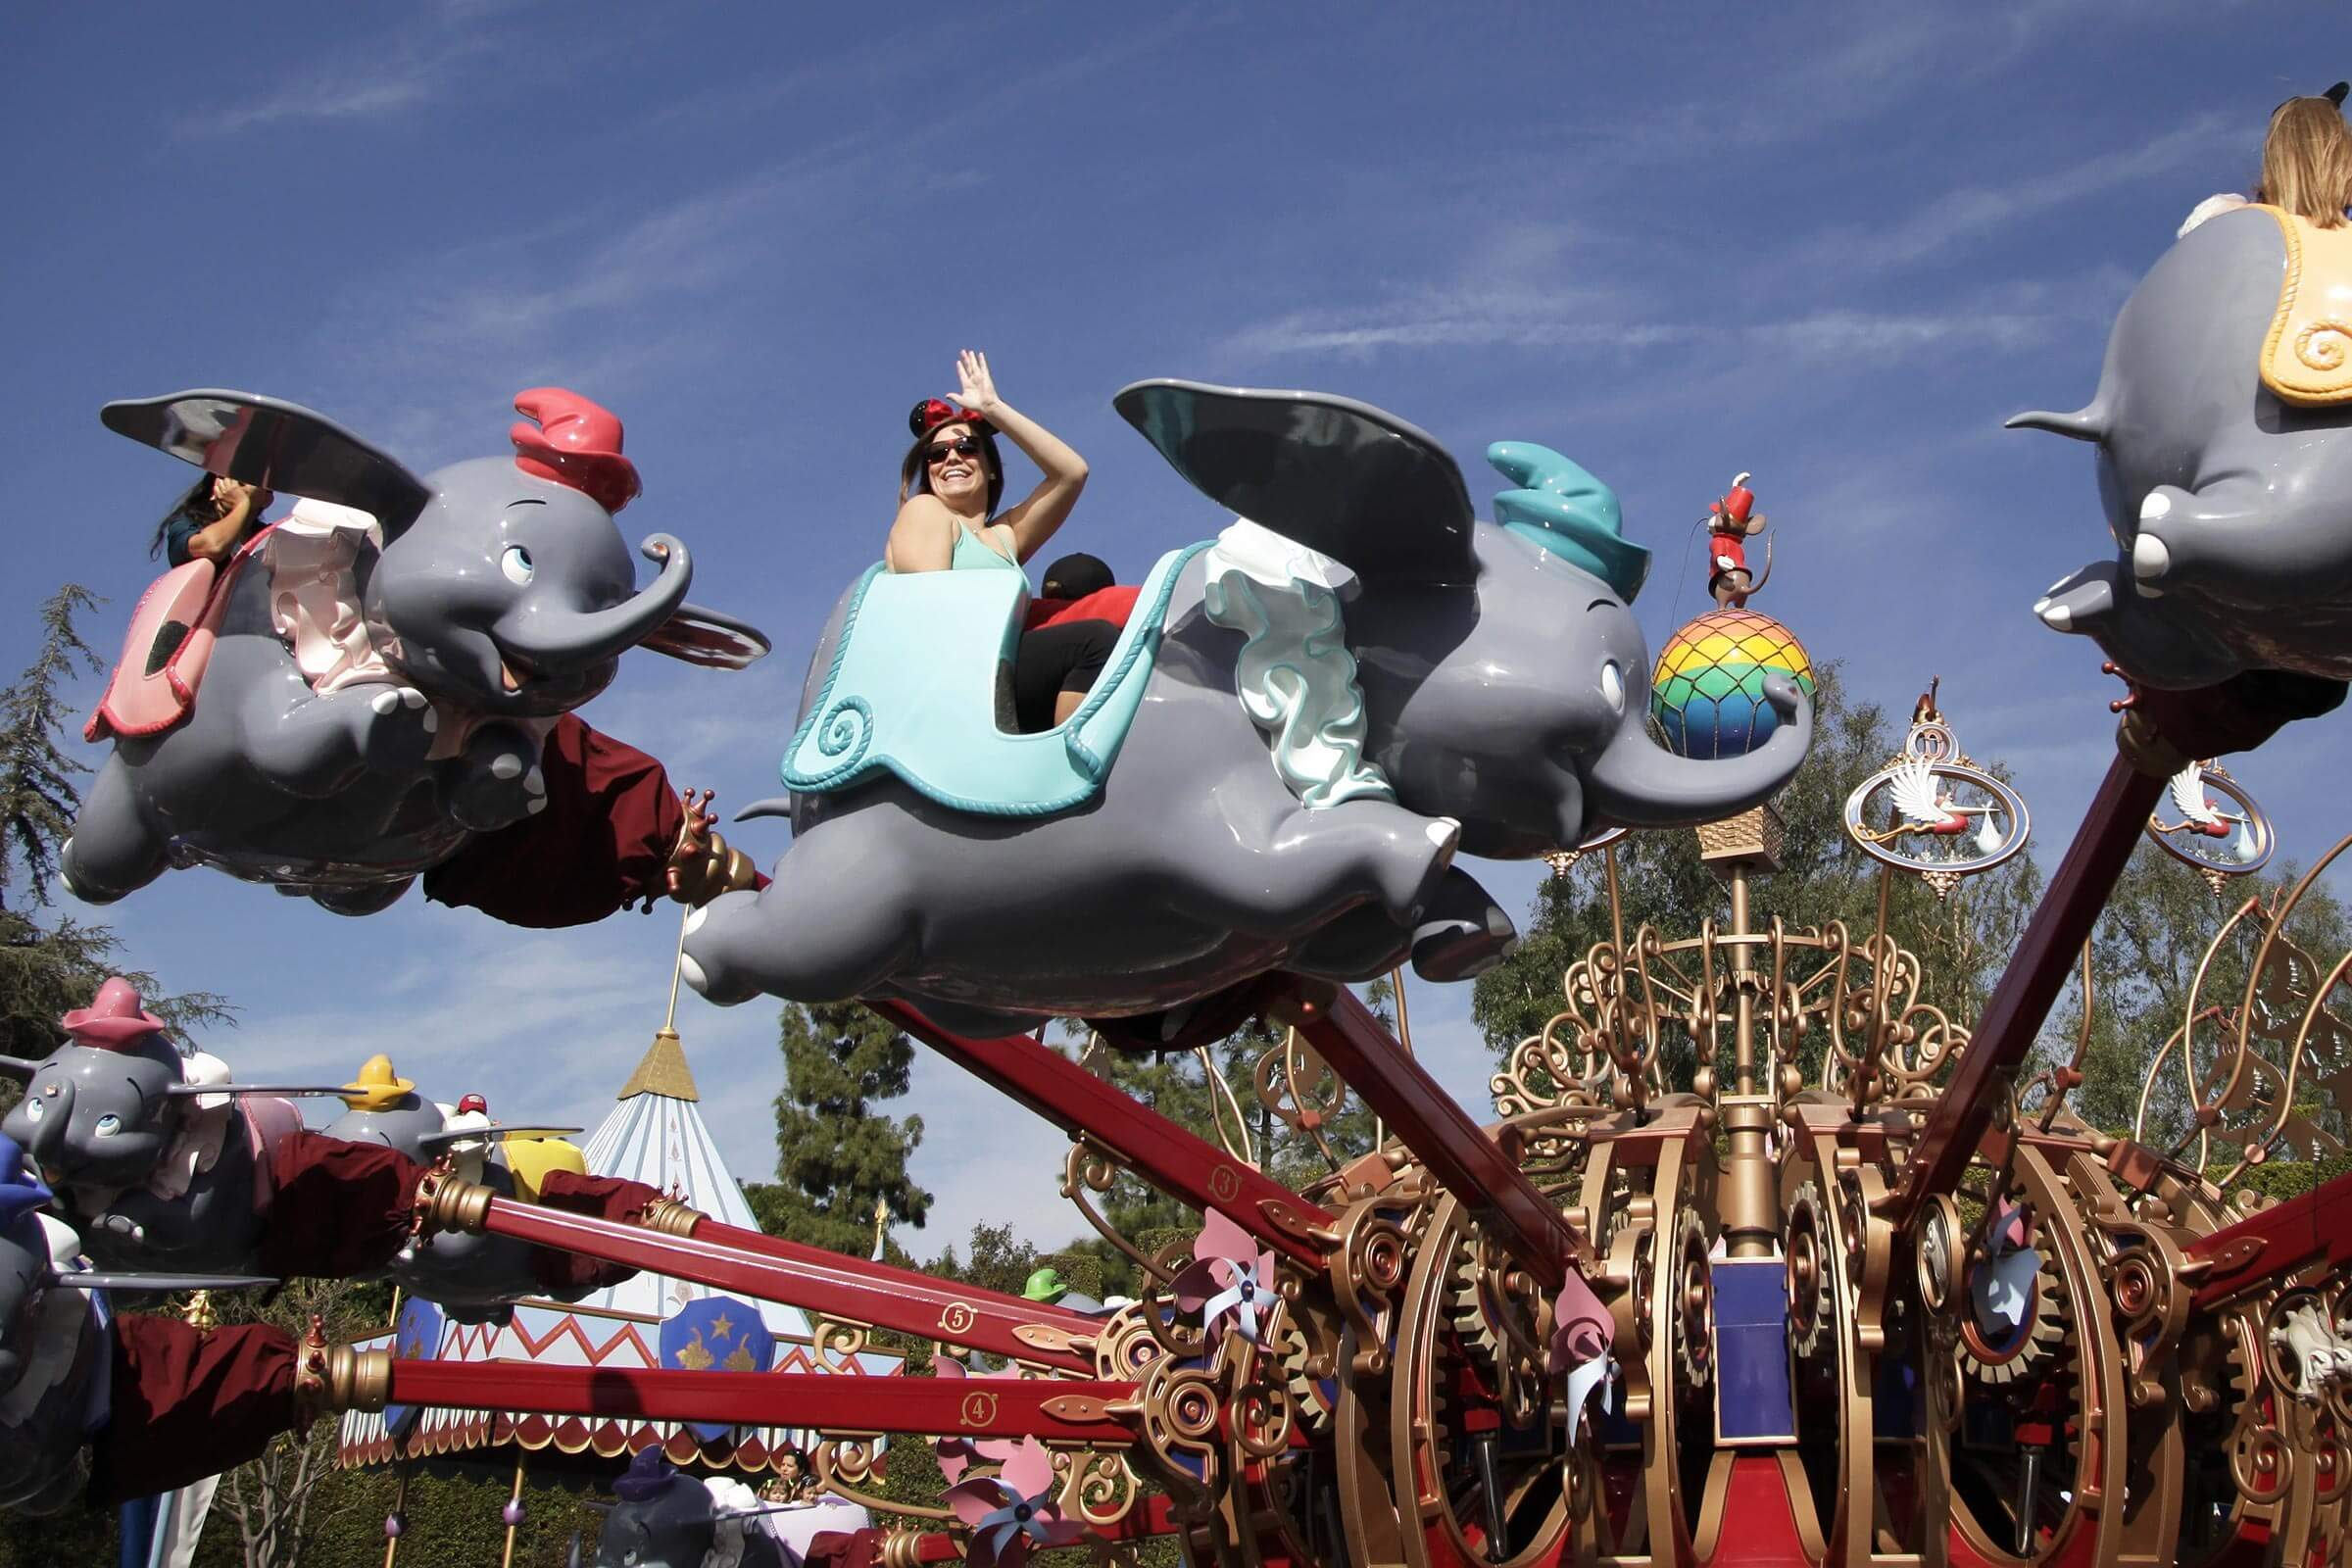 Visitors ride the Dumbo the Flying Elephant ride at Disneyland in Anaheim, Calif. Disney reports quarterly financial results